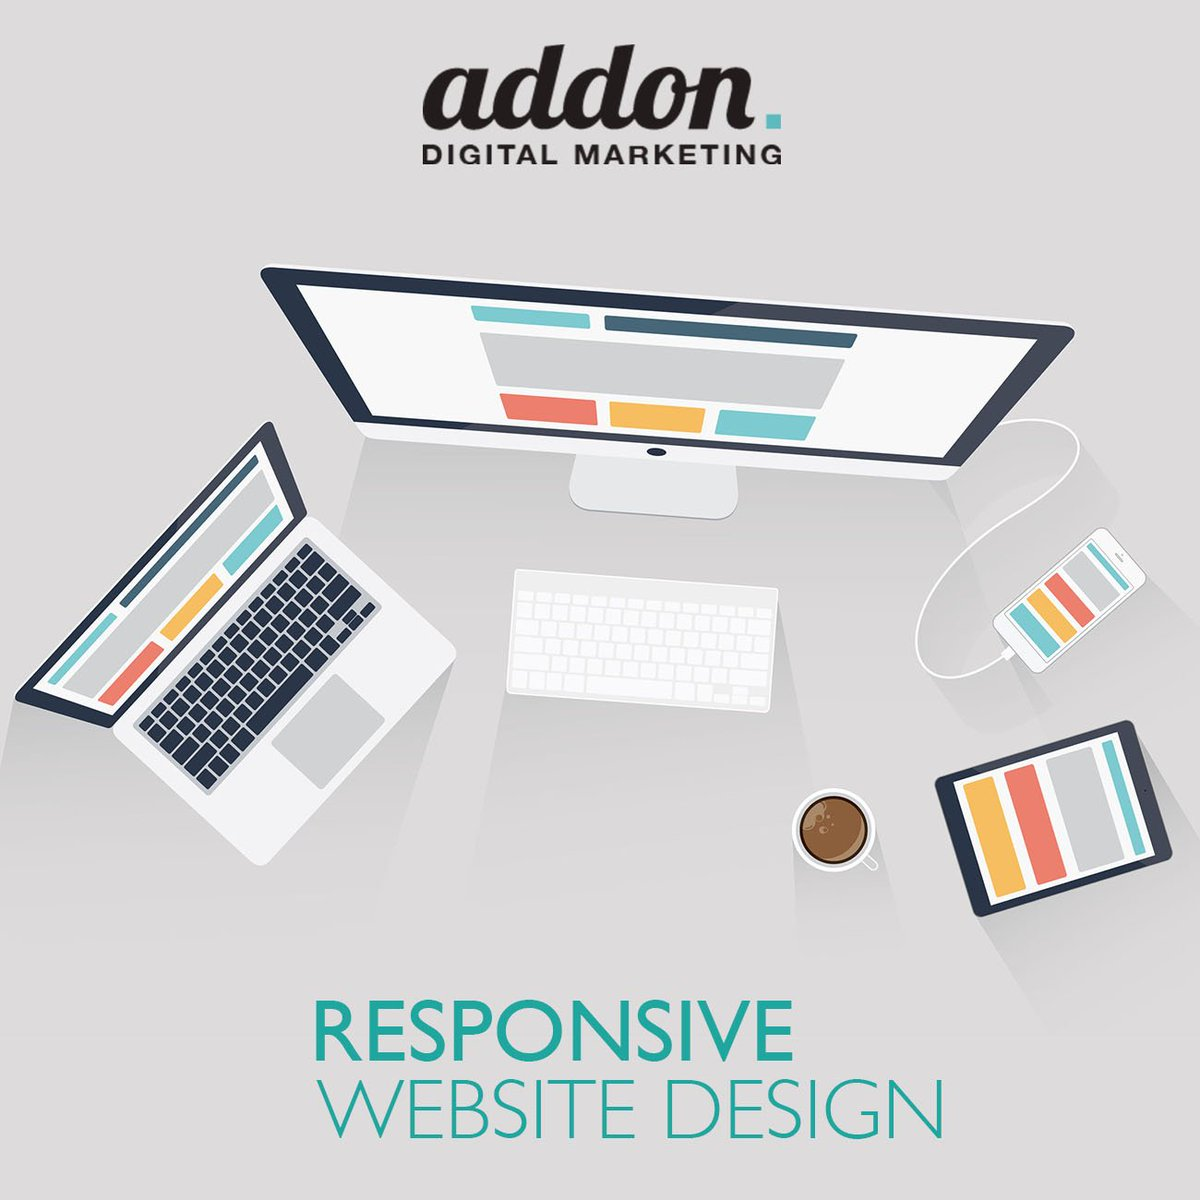 Affordable Website Design & Development 👌We offer a thorough understanding of SEO and social media integration at an unbeatable price of R10k for a 10 page website. Order yours here 👉https://t.co/IHTlgXU2OW #addon #addondigital #digitalmarketing #socialmediamarketing https://t.co/TT28repF2t